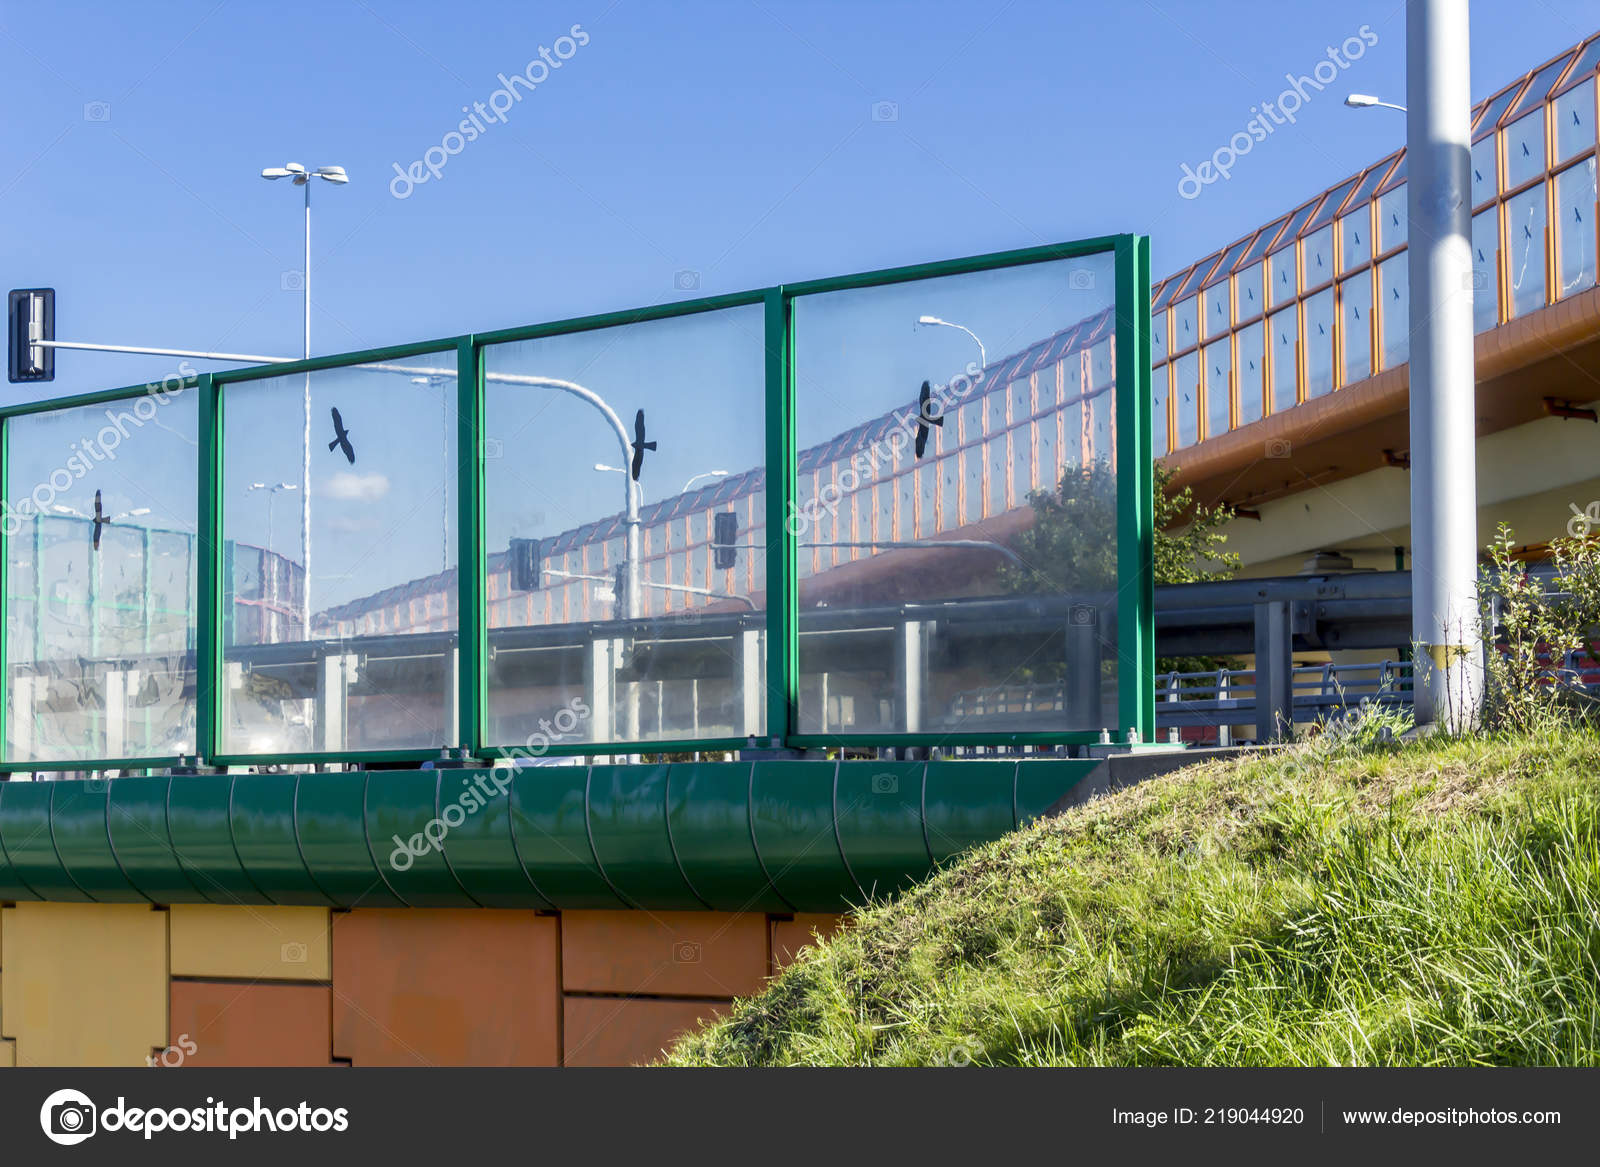 Sound Absorbing Screens Highway Overpass Metal Frames Filled